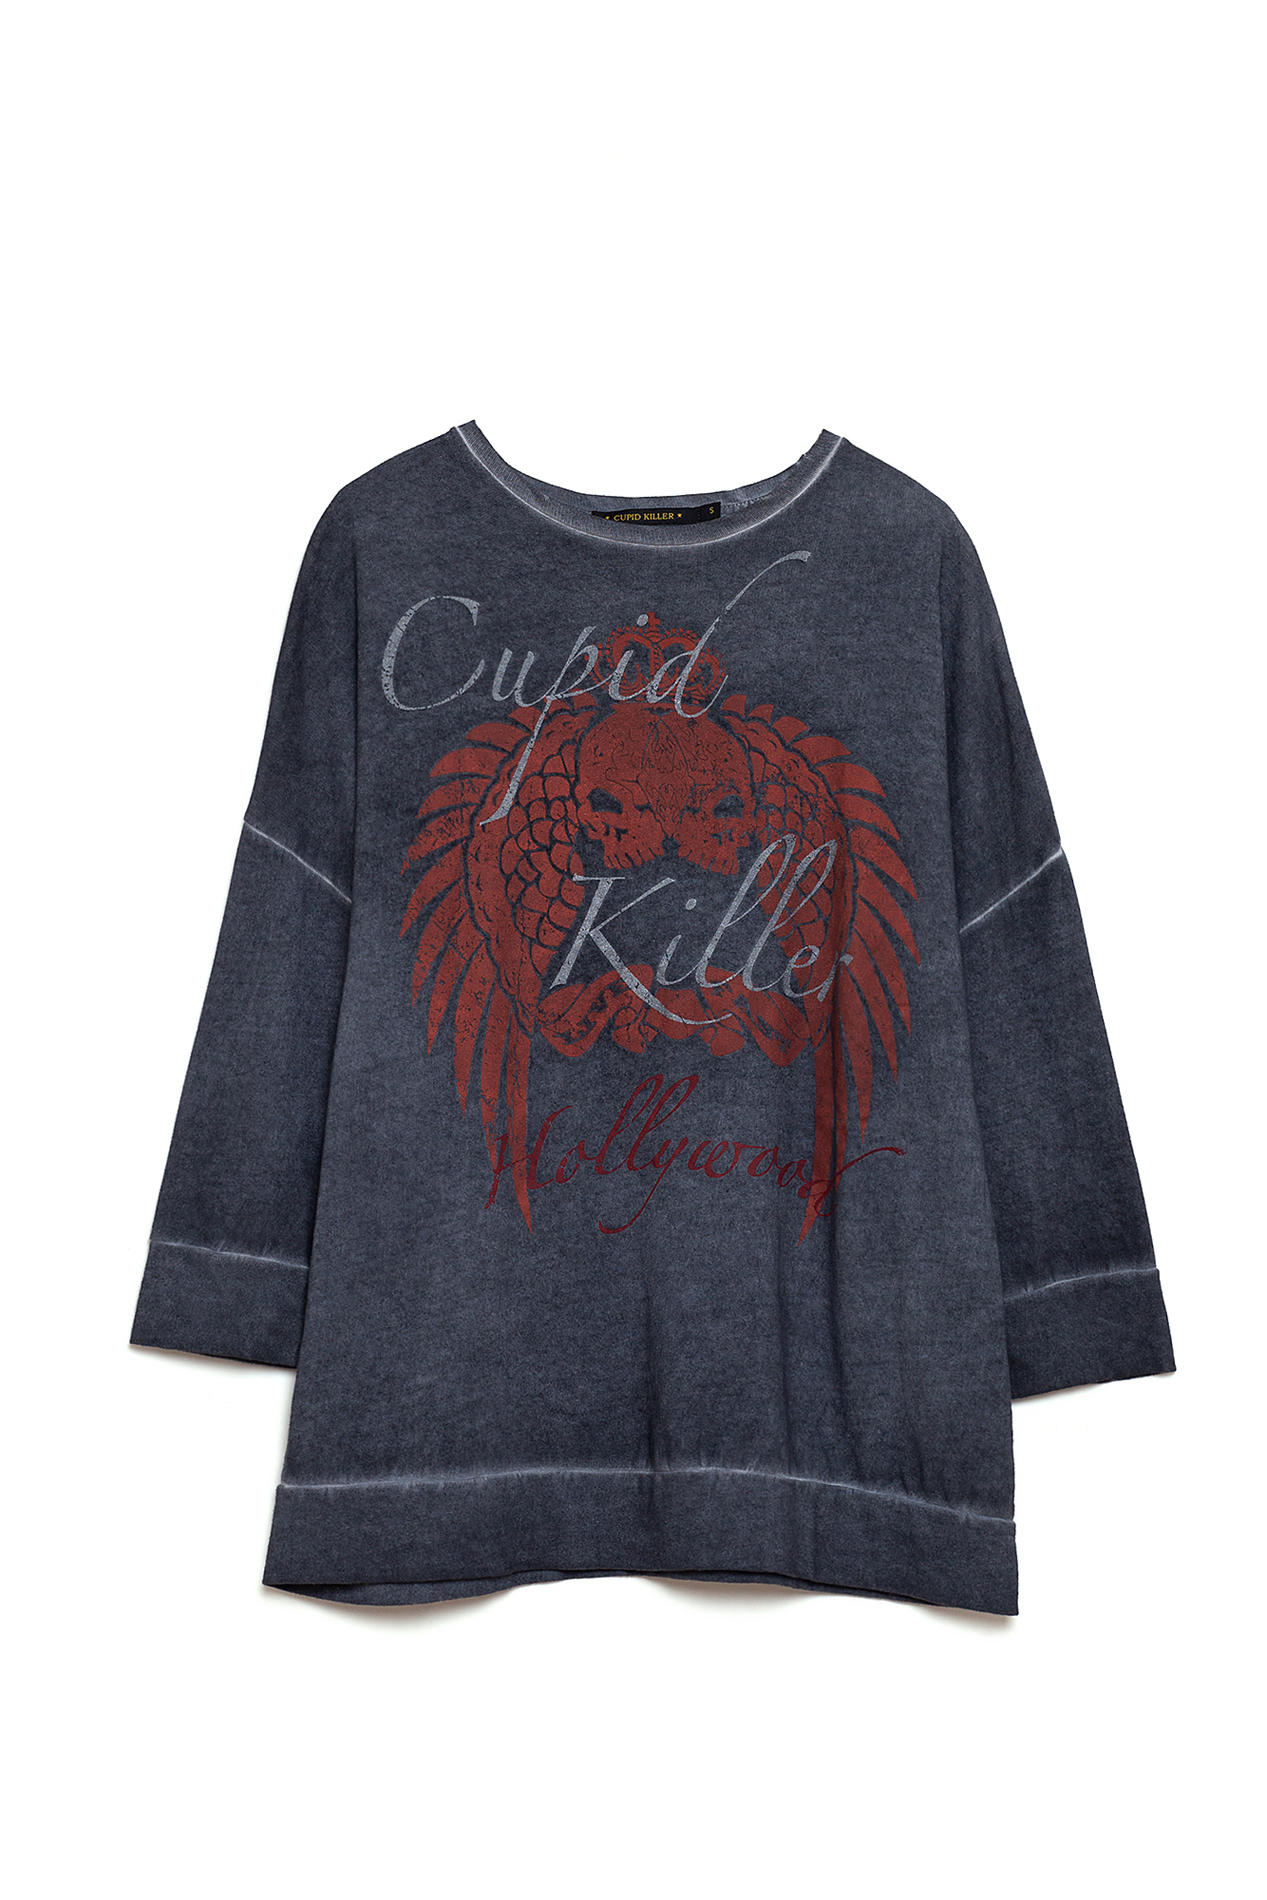 CUPIDO KILLER COLLECTION HOLLYWOOD T shirt met Mouwen Kleur Lange Grafit voor Vrouwen CK000083 - 1